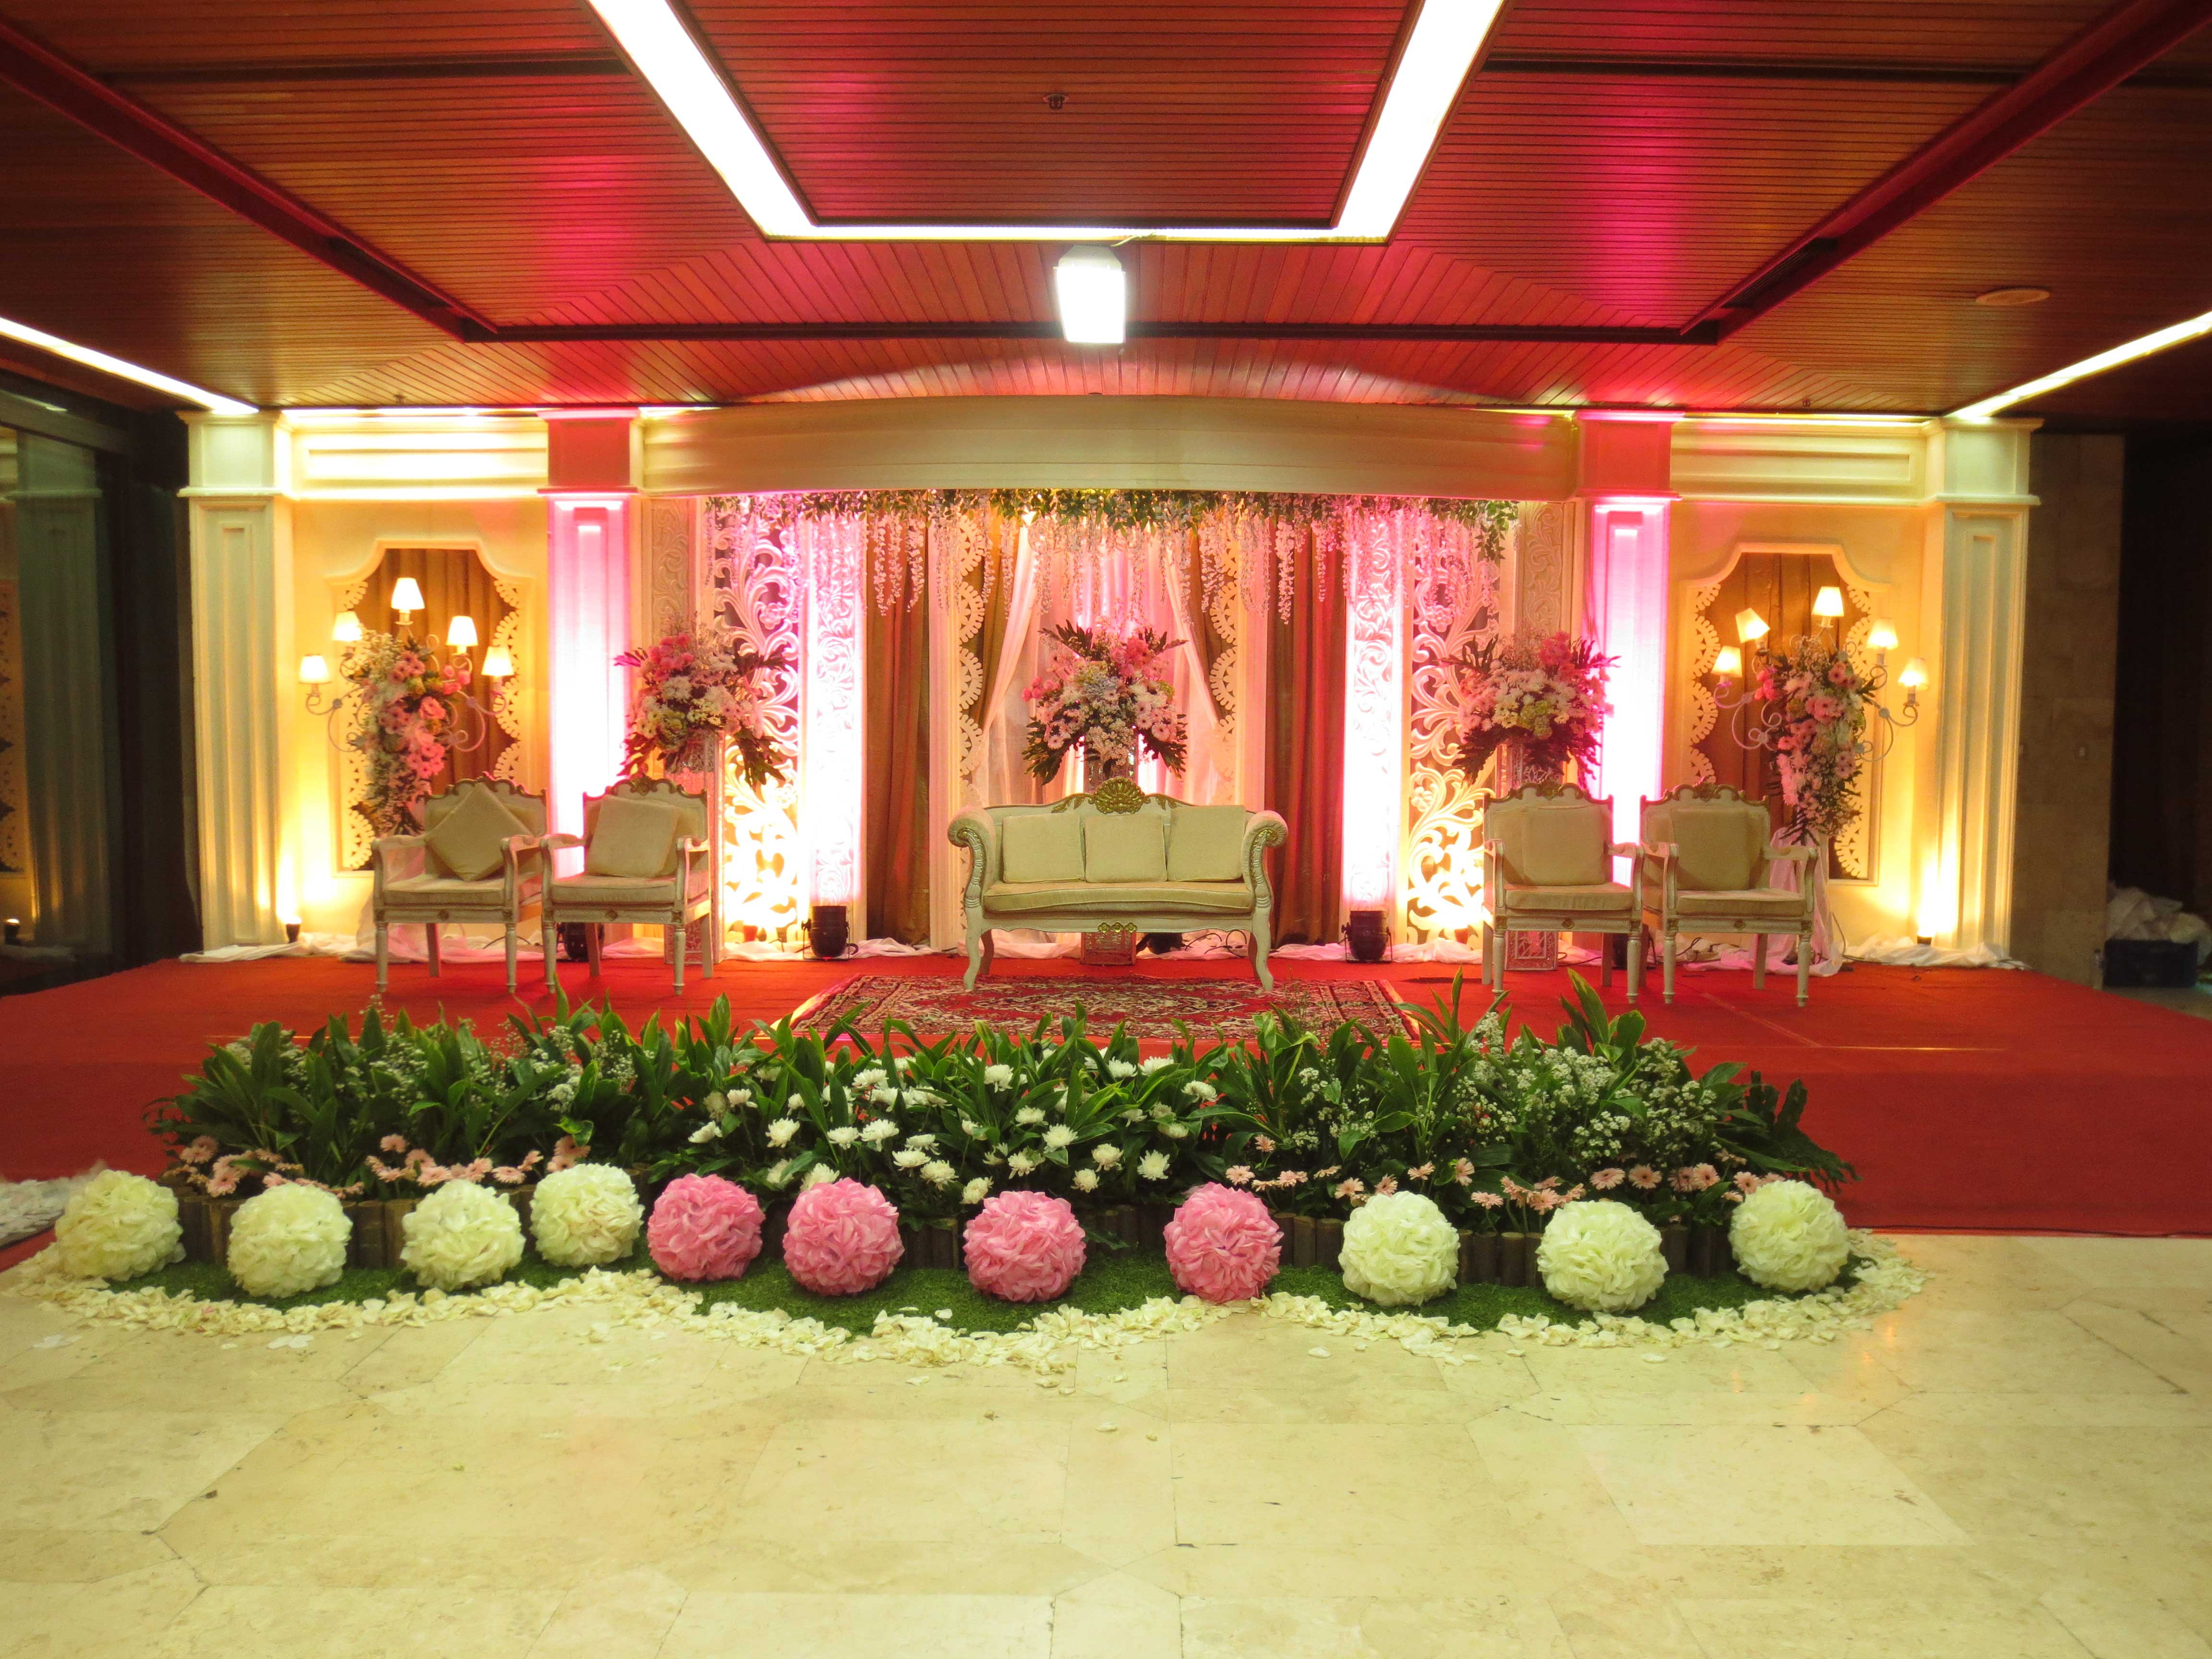 Wedding decor supplier jakarta image collections wedding dress wedding decoration vendor jakarta choice image wedding dress wedding decor supplier jakarta images wedding dress decoration junglespirit Image collections